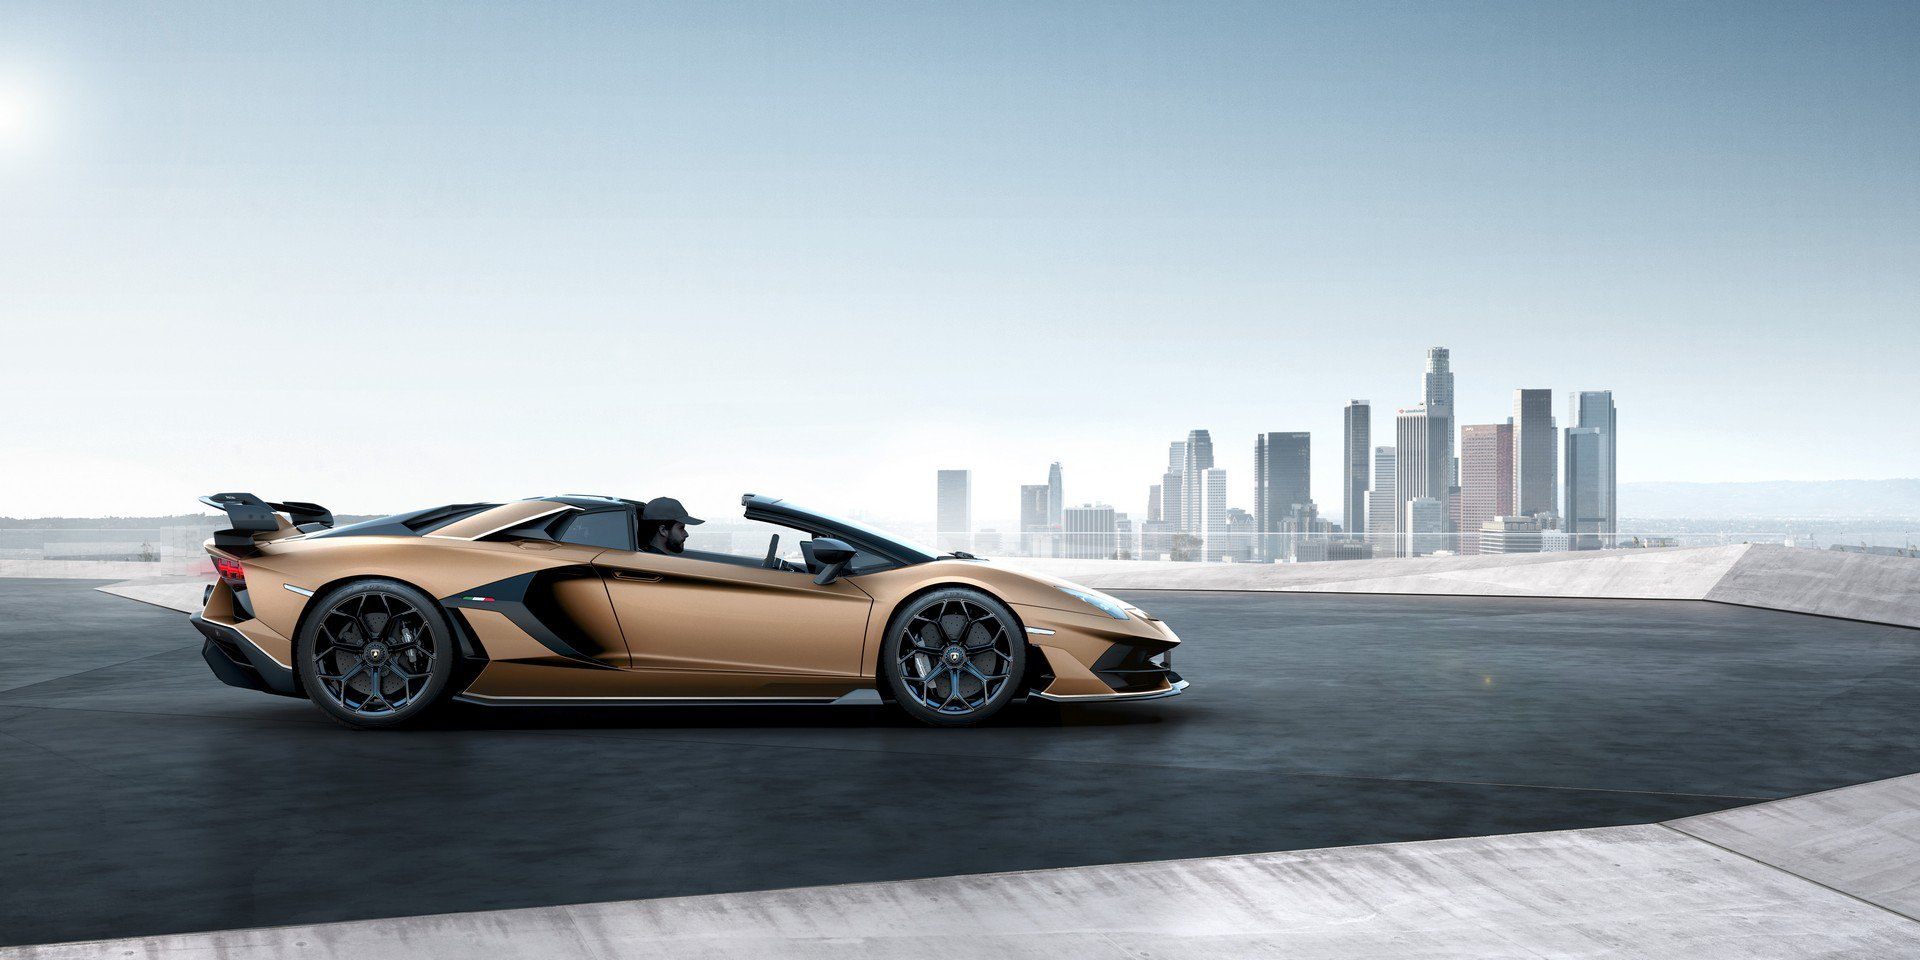 2020 Lamborghini Aventador Svj Roadster Review Autoevolution